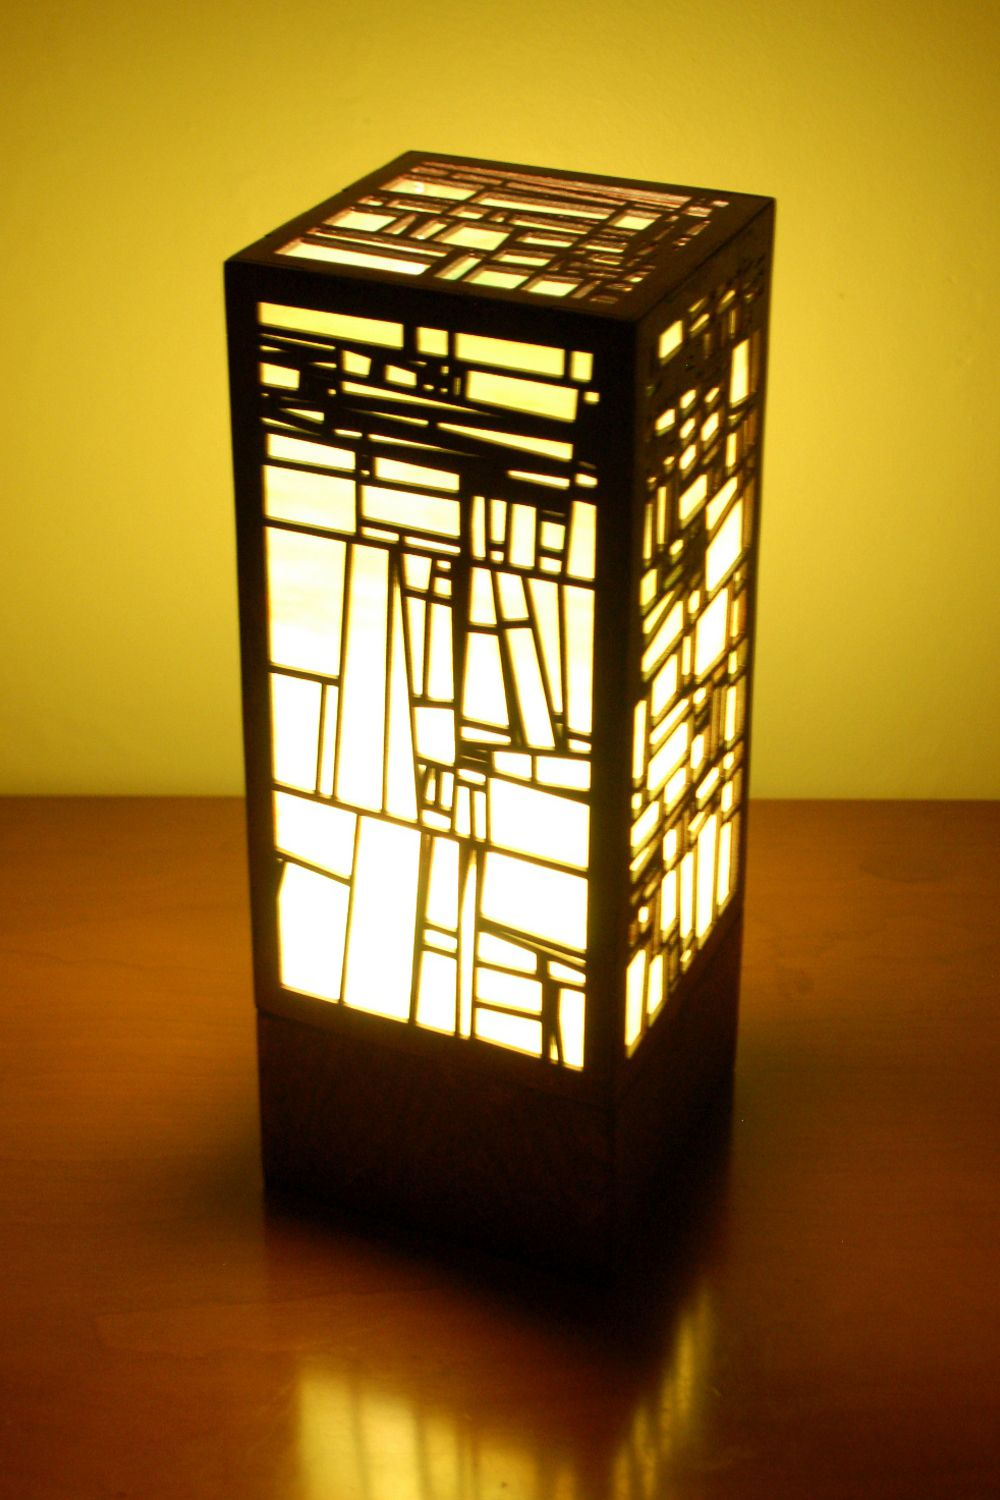 Terra 1 0 Lasercut Lamp By Foxworth Architecture Pllc Wood Lamp Design Hanging Lamp Diy Lamp Decor